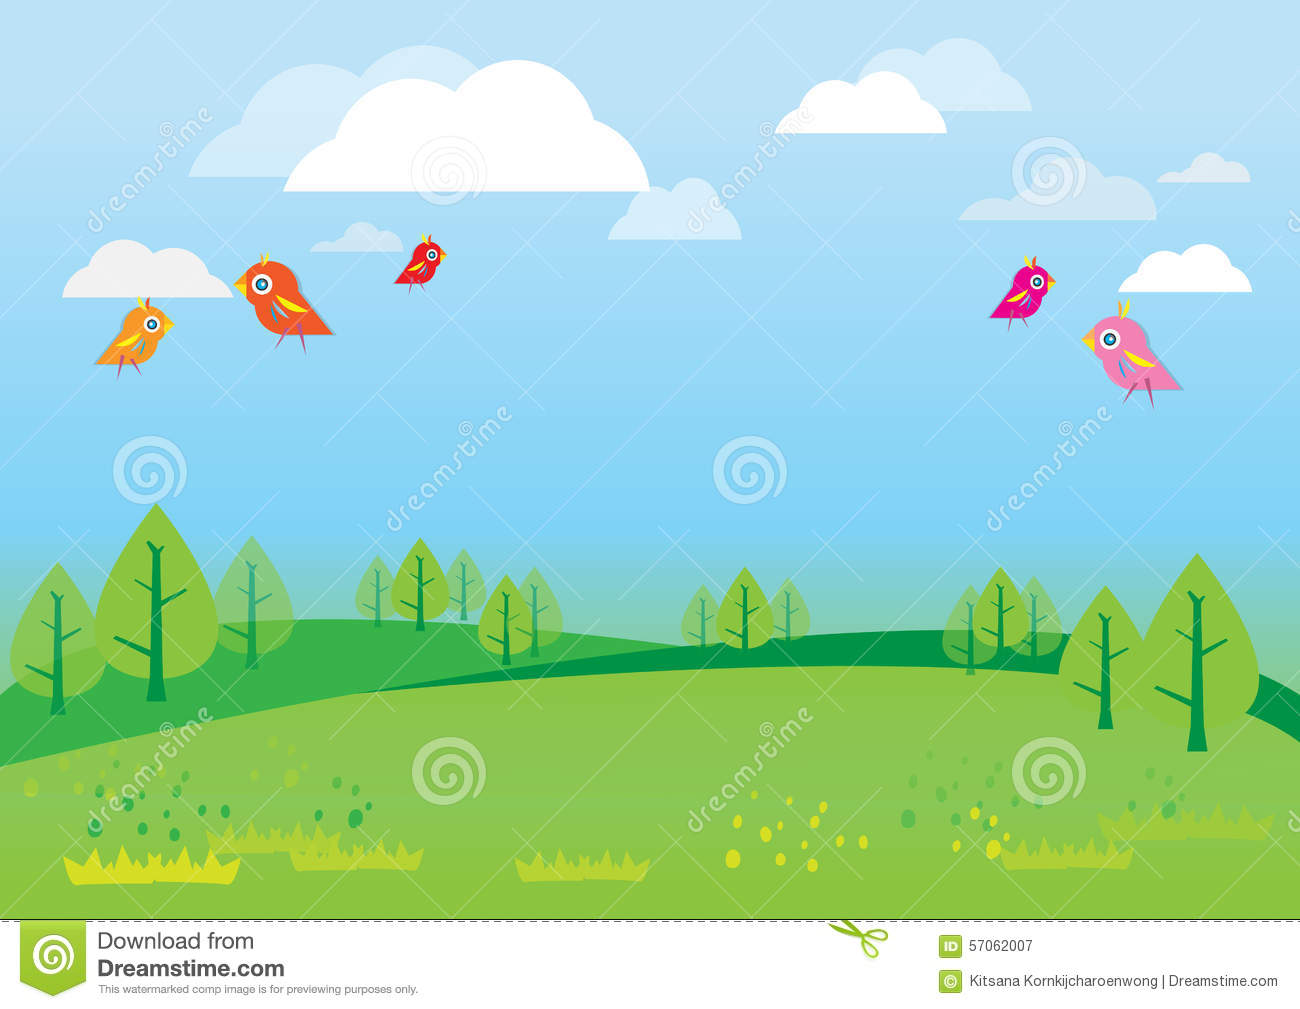 Background clipart nature. For kids station